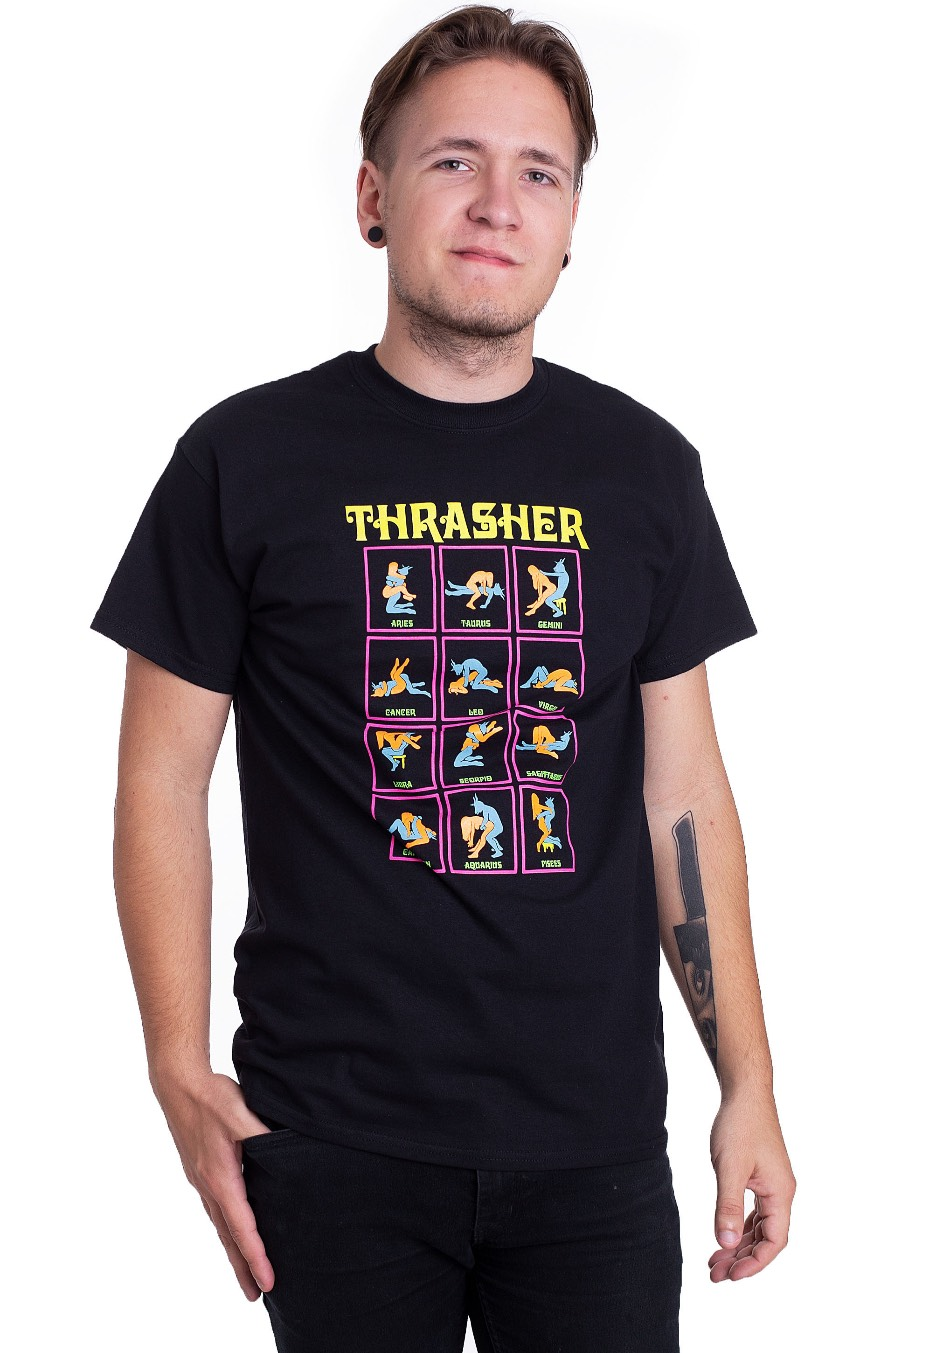 380900926676 Thrasher - Black Light Black - T-Shirt - Streetwear Shop - Impericon.com AU